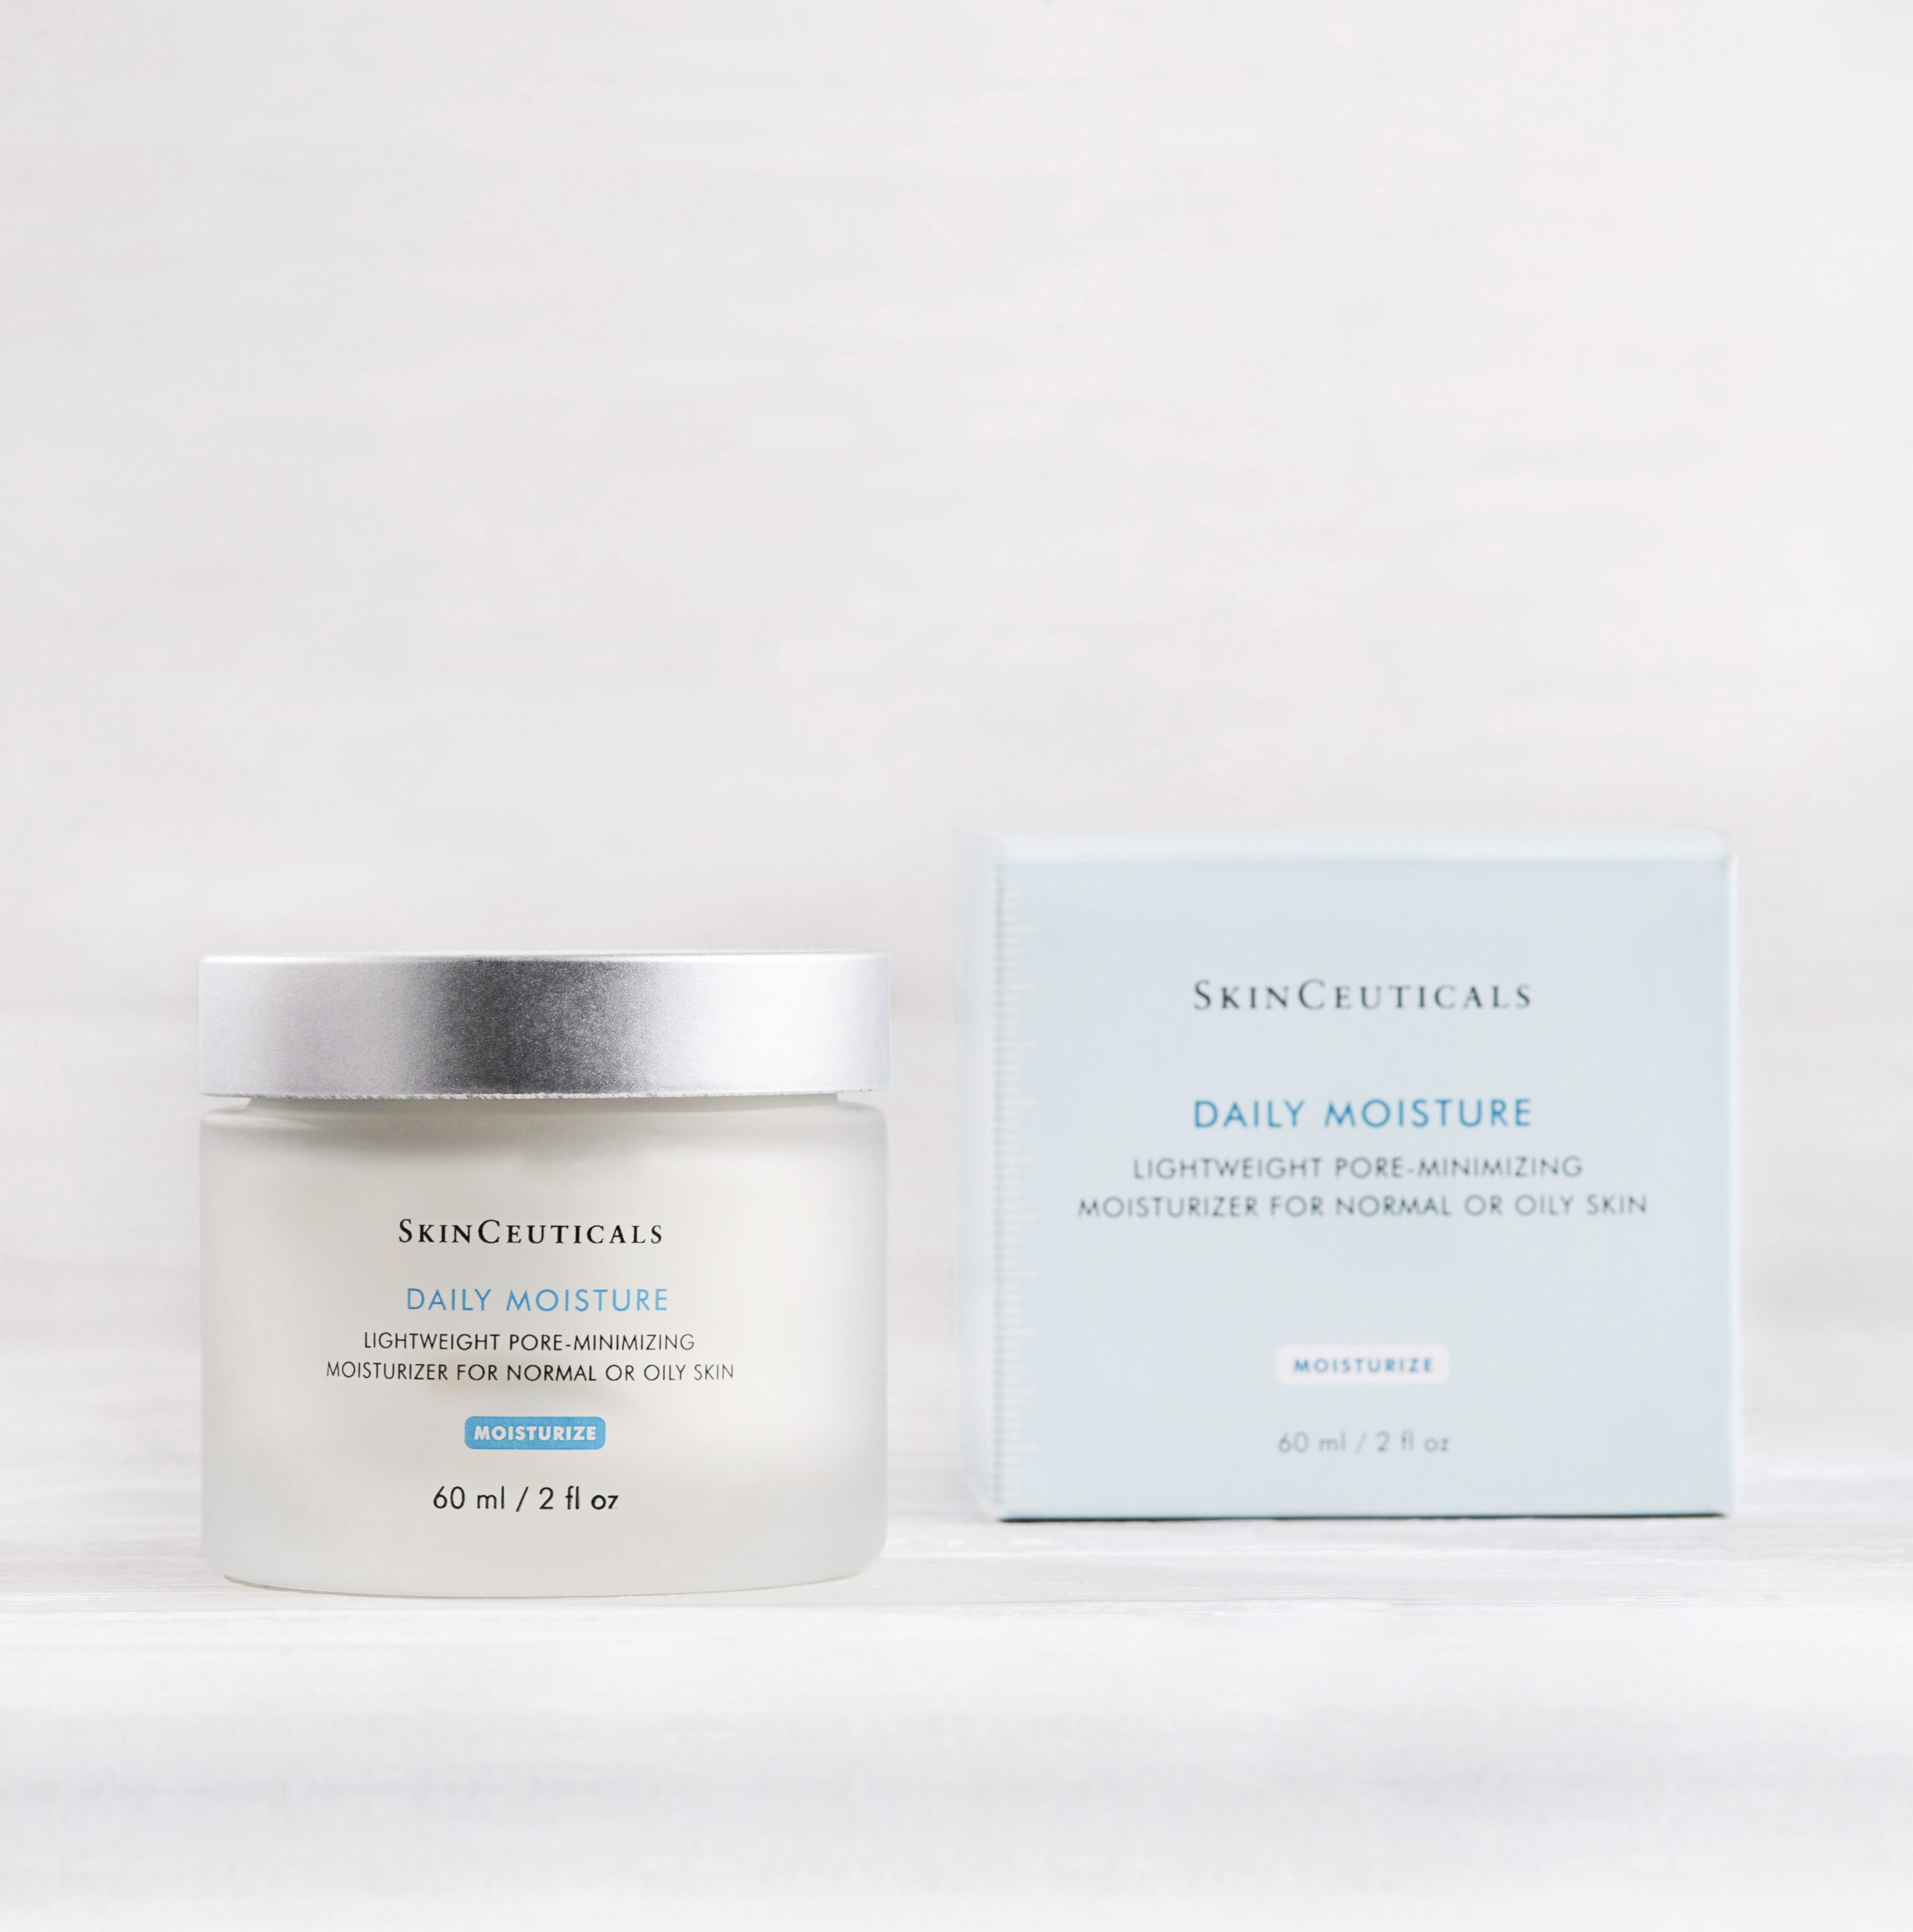 SKIN Las Vegas Med Spa - order Skinceuticals Daily moisture